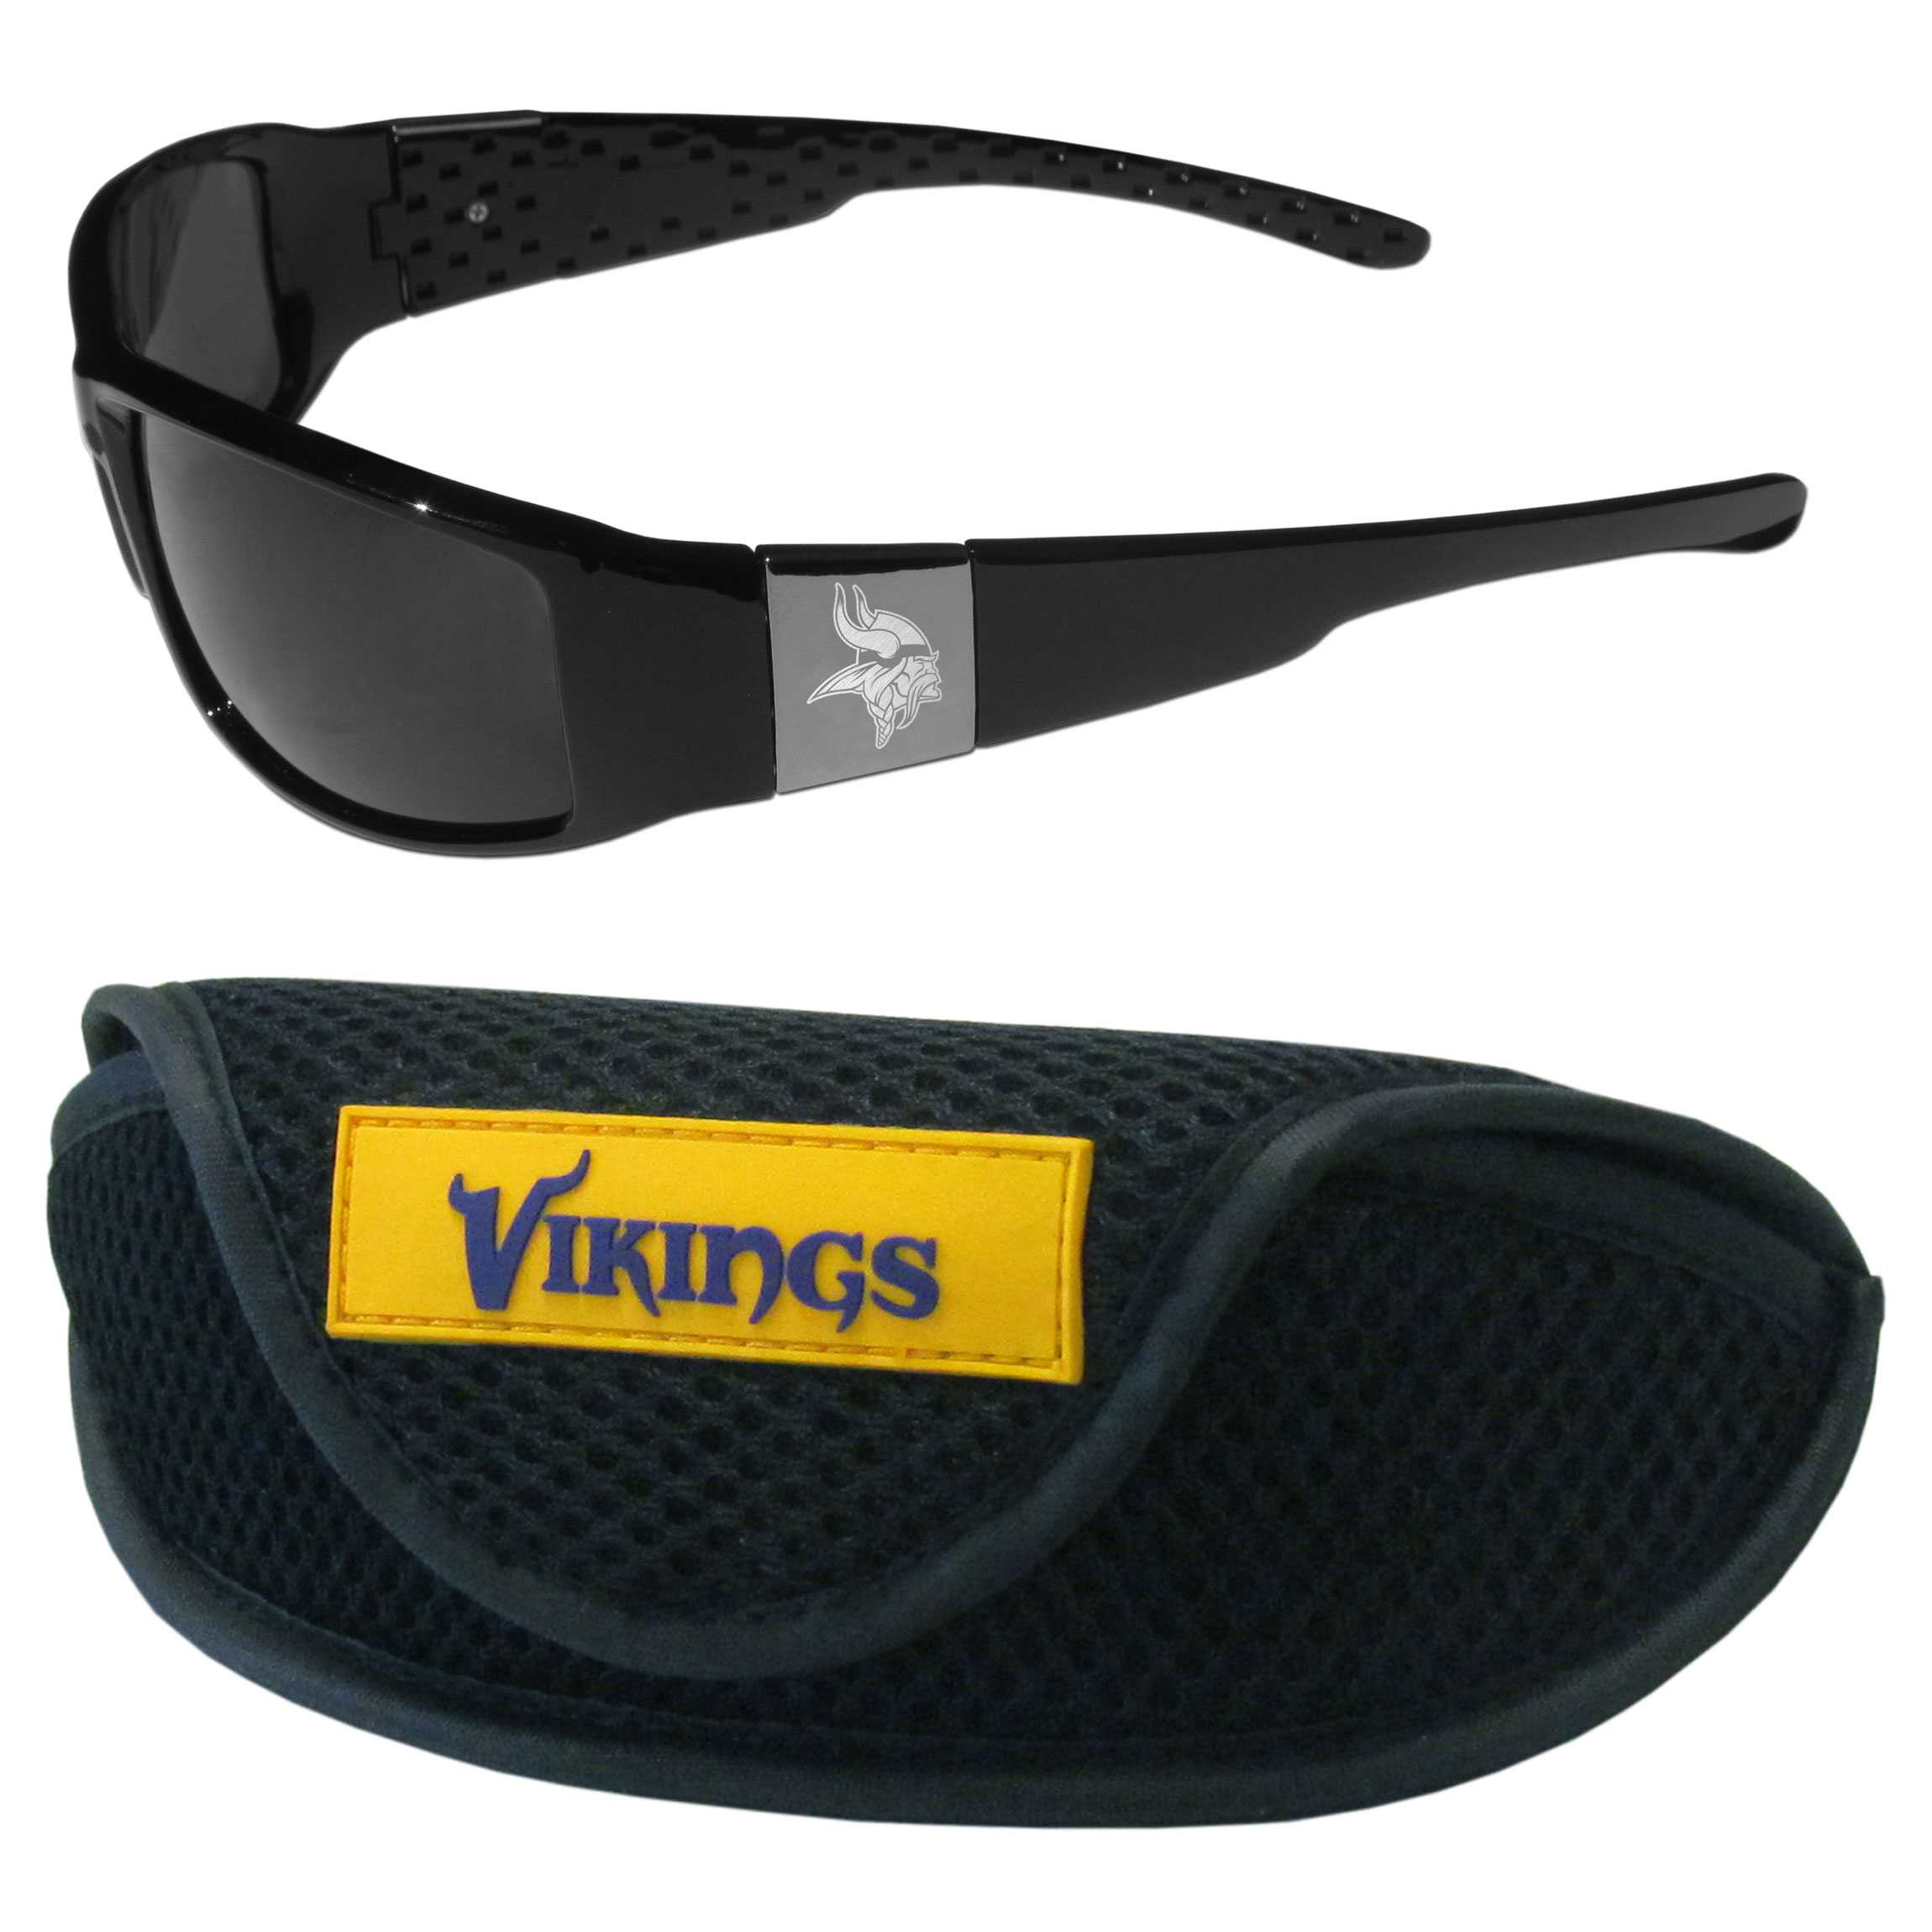 Minnesota Vikings Chrome Wrap Sunglasses and Sports Case - Our sleek and stylish Minnesota Vikings chrome wrap sunglasses and our sporty mesh case. The sunglasses feature etched team logos on each arm and 100% UVA/UVB protection. The case features a large and colorful team emblem.